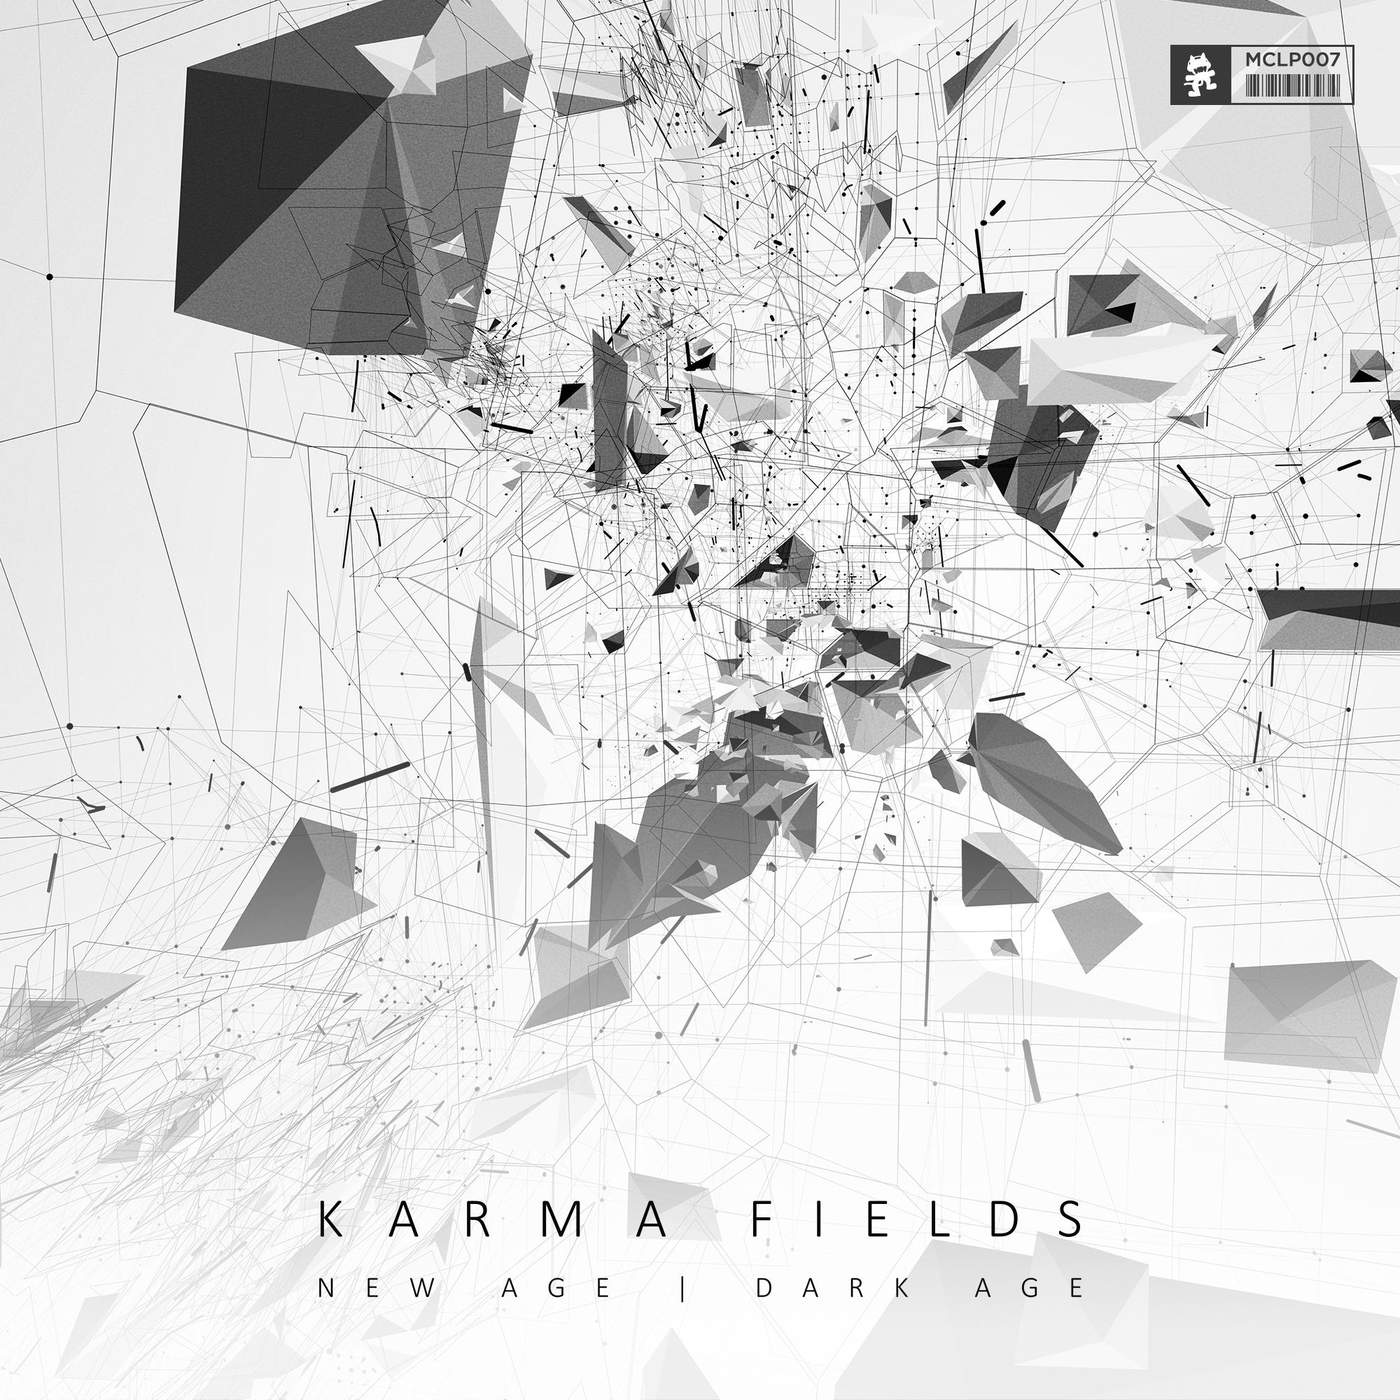 Edge of the World (Karma Fields)